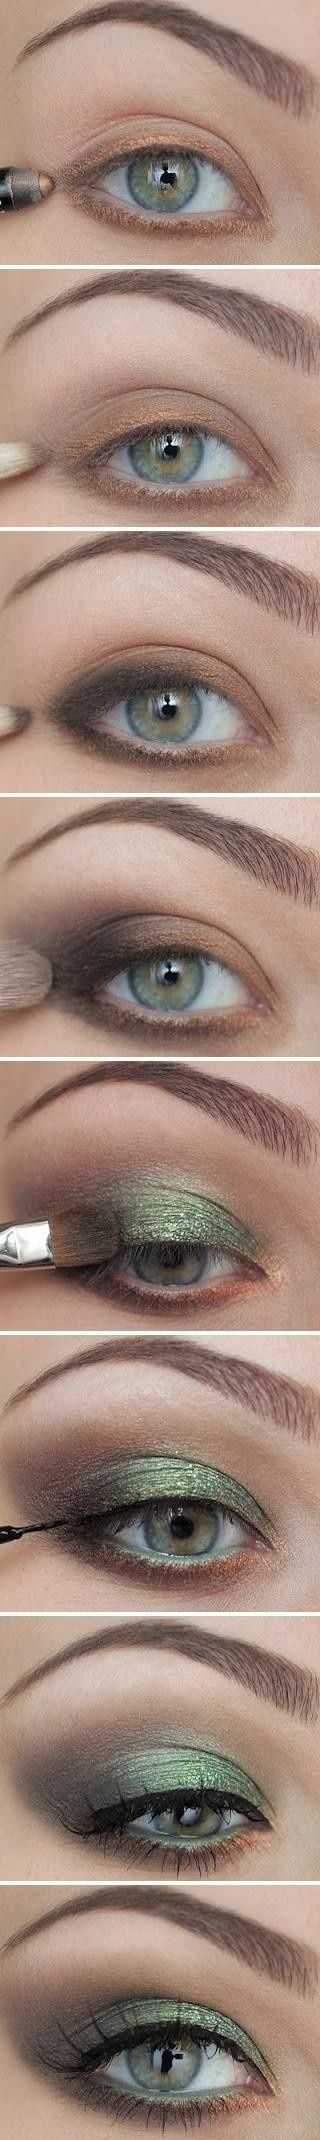 Green Smokey eyes .... LOVE